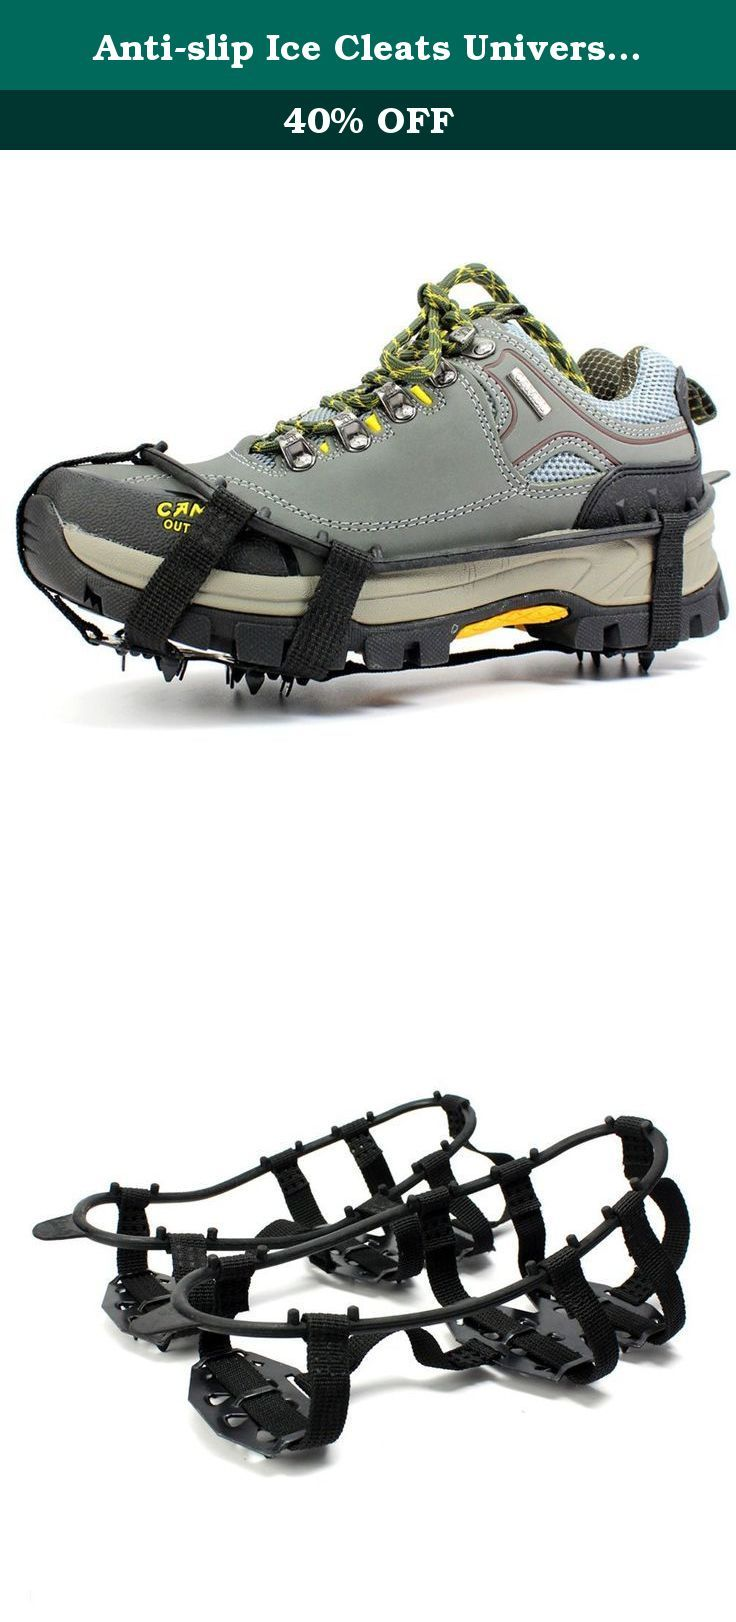 Pin On Traction Cleats Accessories Outdoor Recreation Sports Outdoors